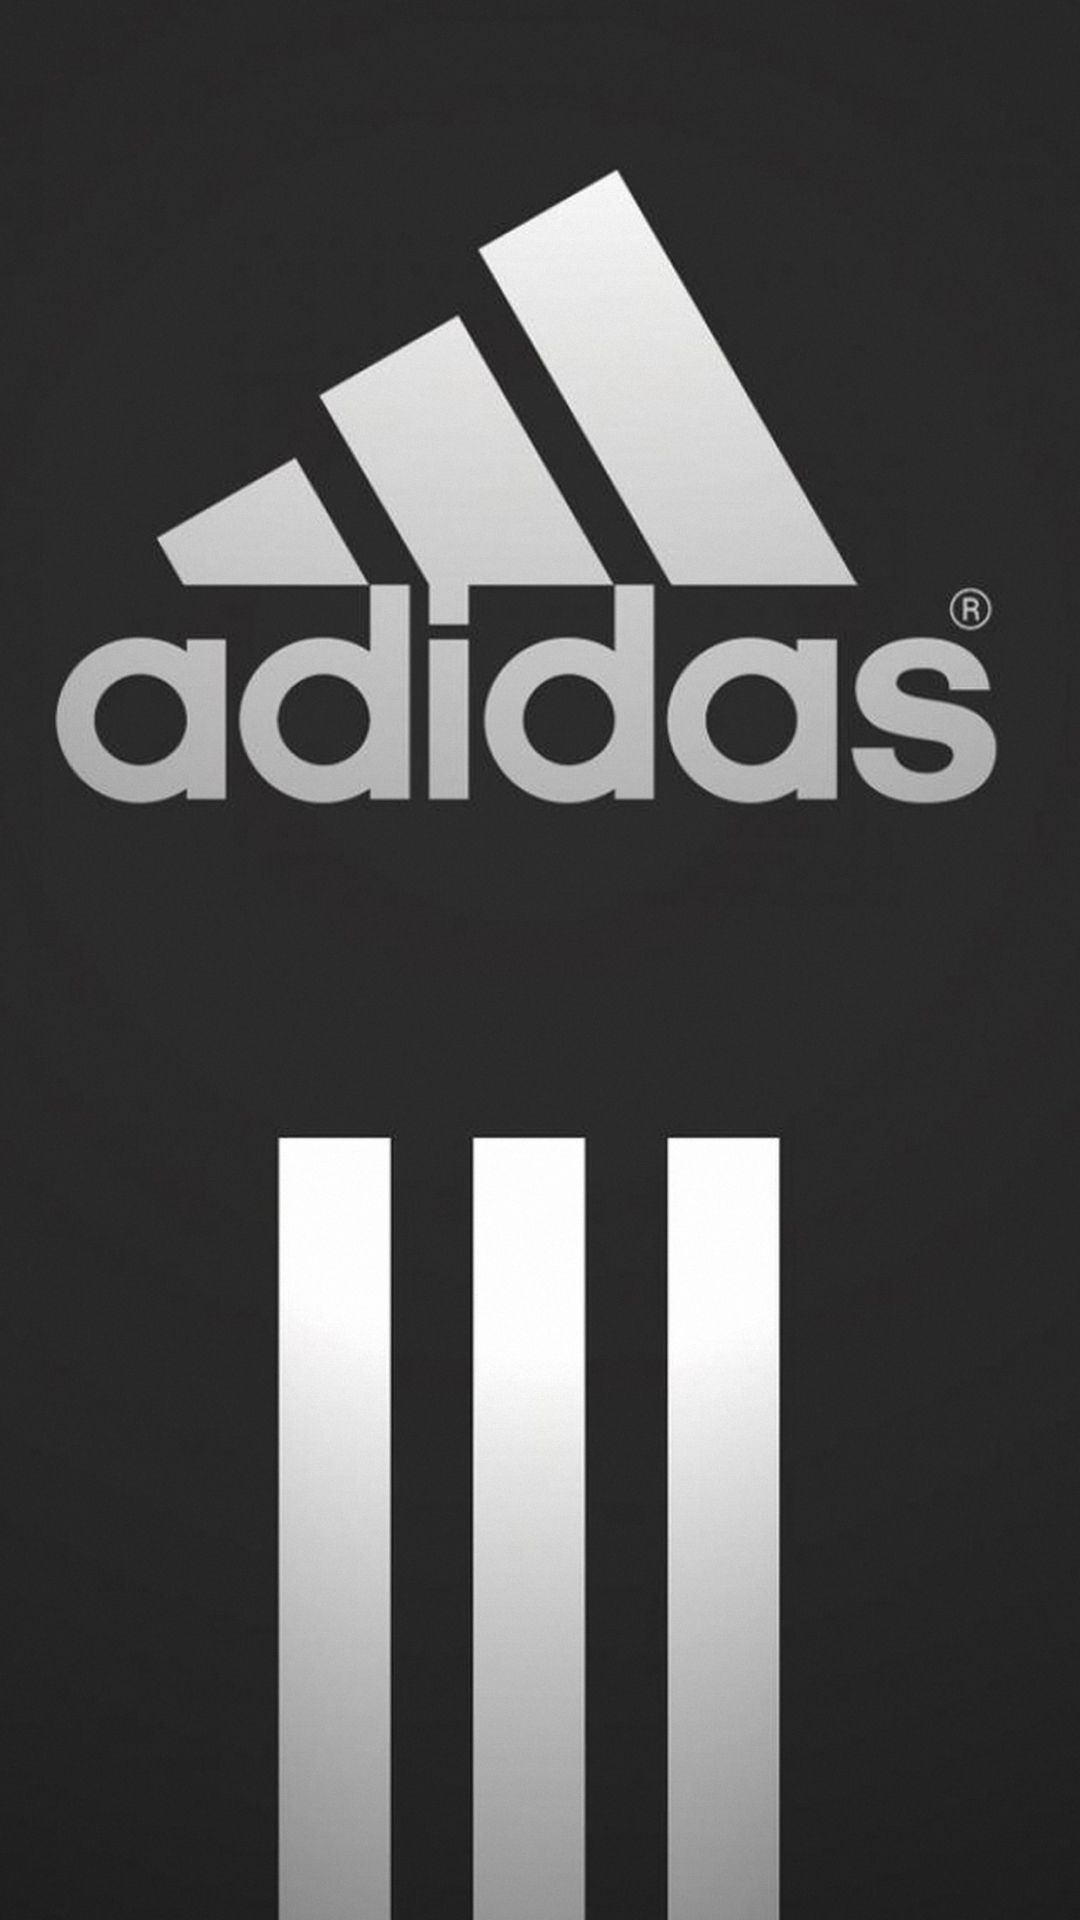 Download Hd Adidas Logo Iphone 6s 7 7s Plus Wallpapers More